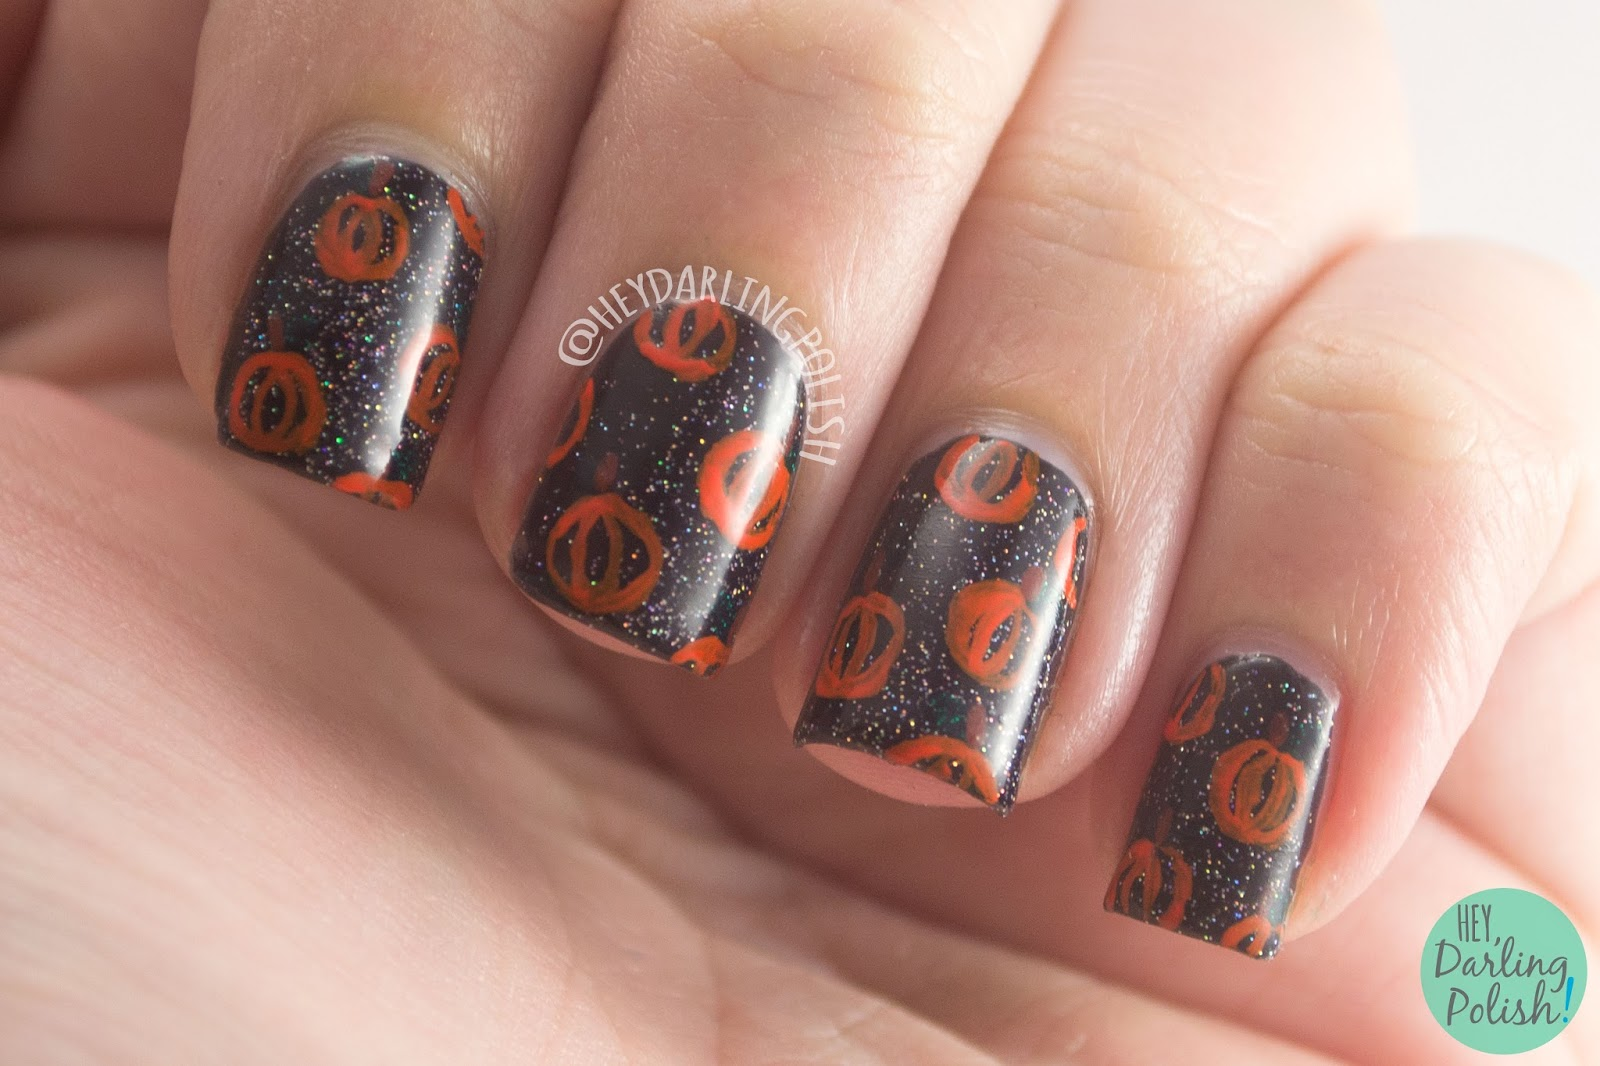 nails, nail art, nail polish, pumpkins, halloween, hey darling polish, nail linkup, naillinkup